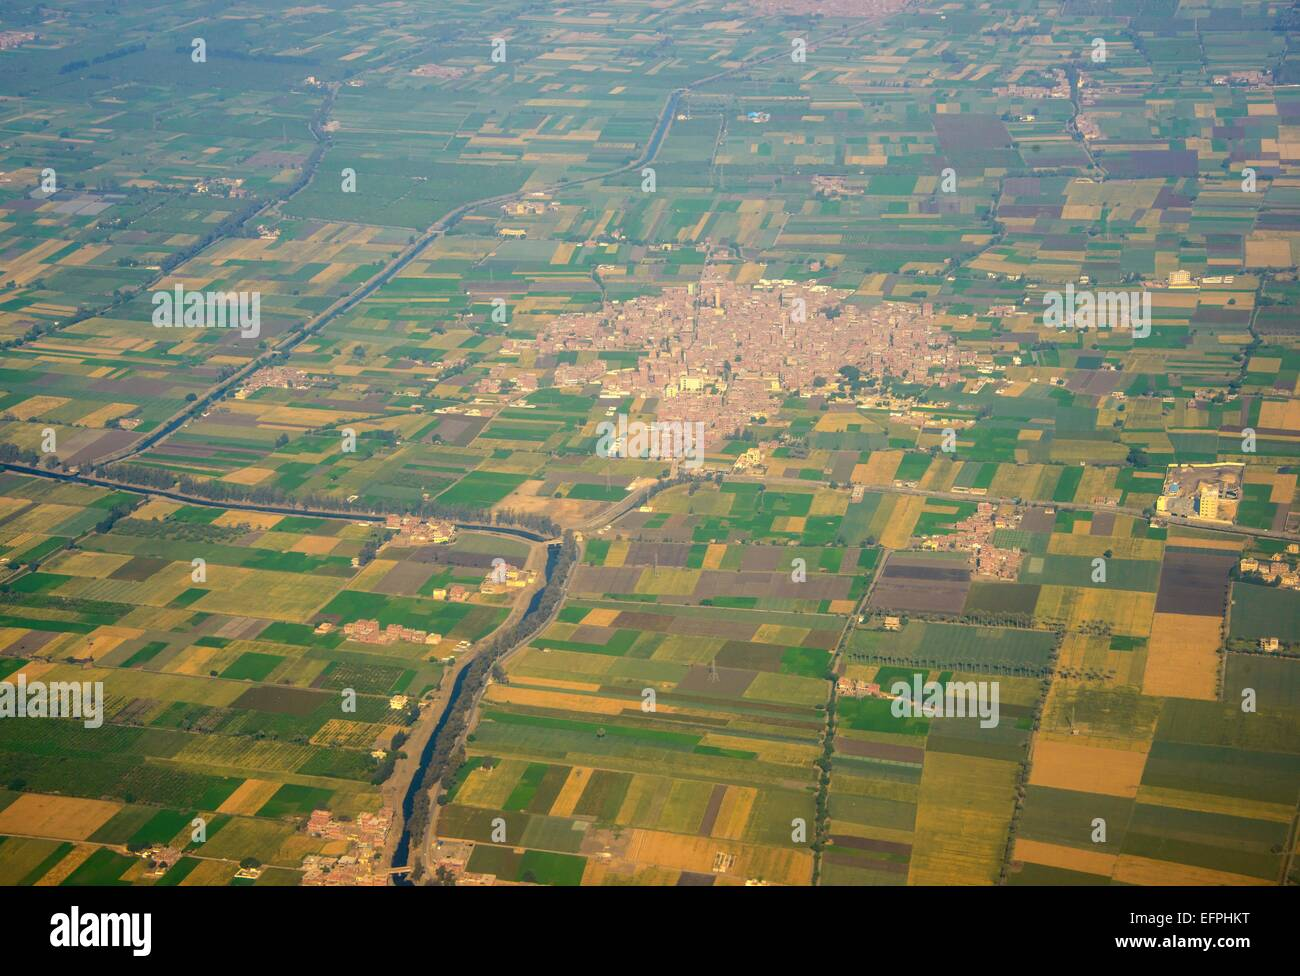 Aerial of suburbs of Cairo with a little channel for irrigation, Egypt, North Africa, Africa - Stock Image